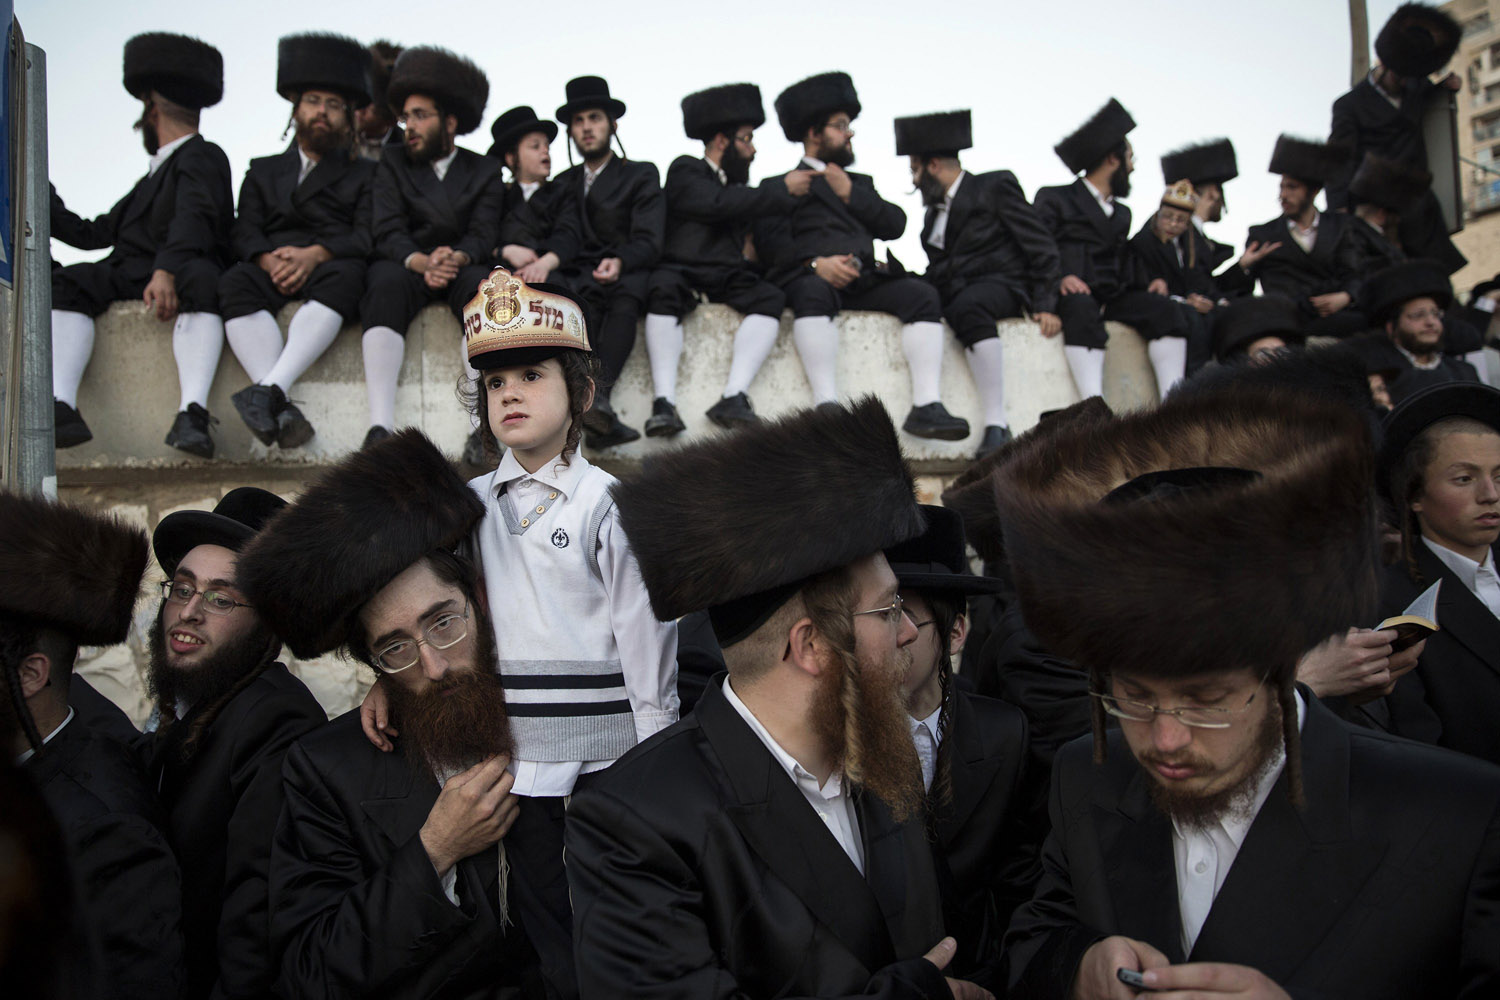 Jun. 10, 2014. Ultra-orthodox Jews watch the wedding ceremony of Esther Rokeach and Avraham Safrin (not pictured) in Jerusalem.